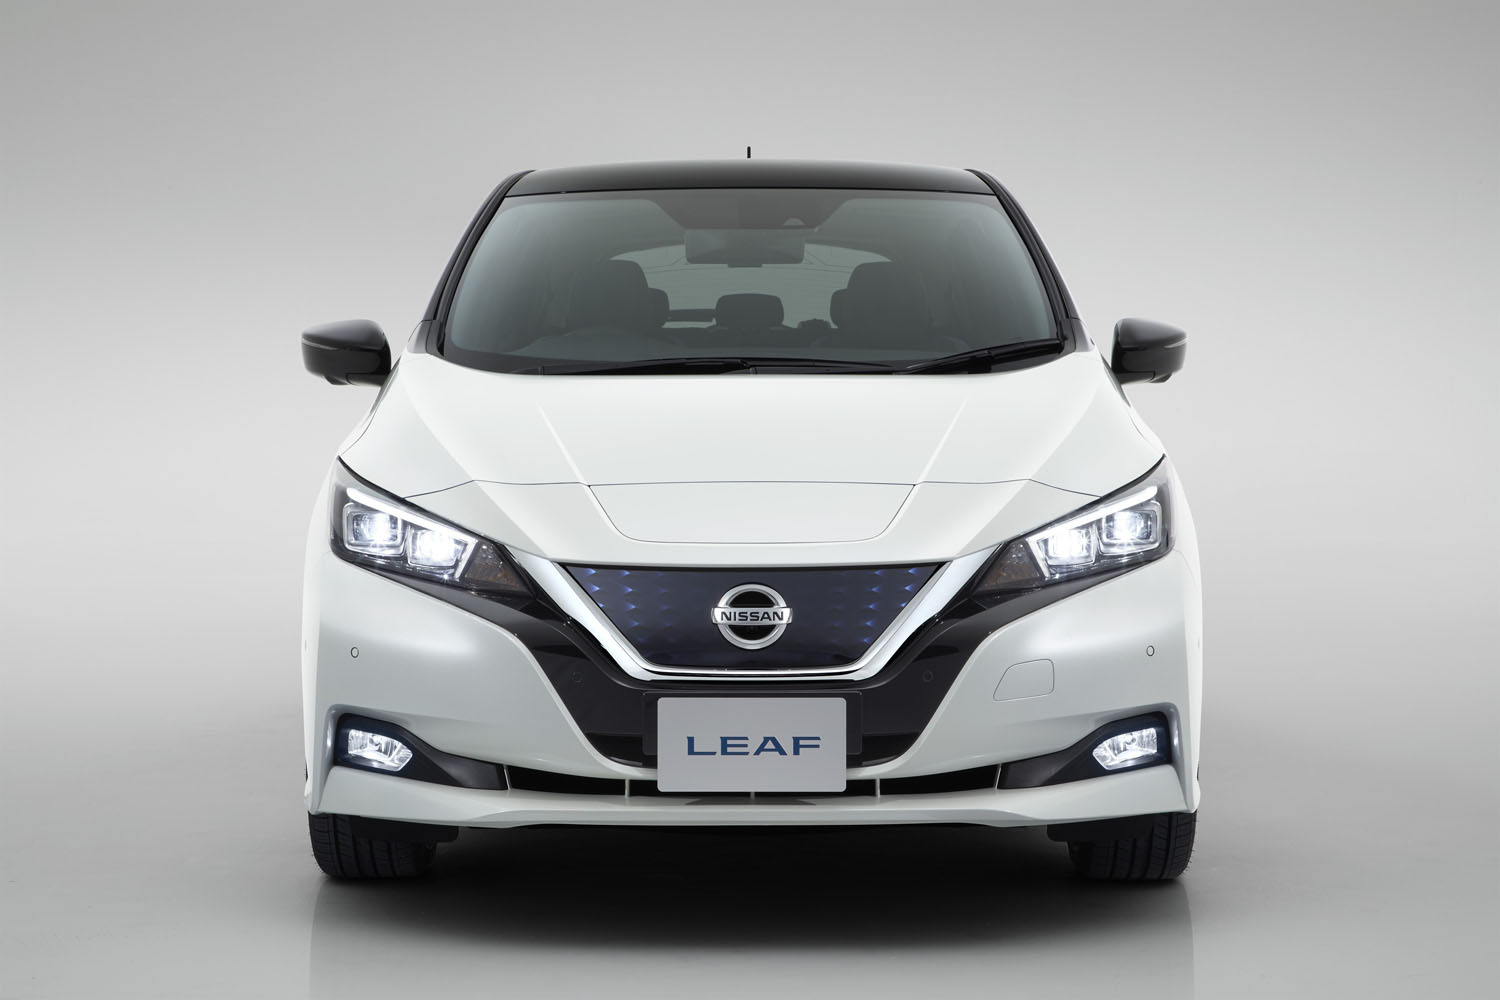 Welcome to the new Nissan Leaf